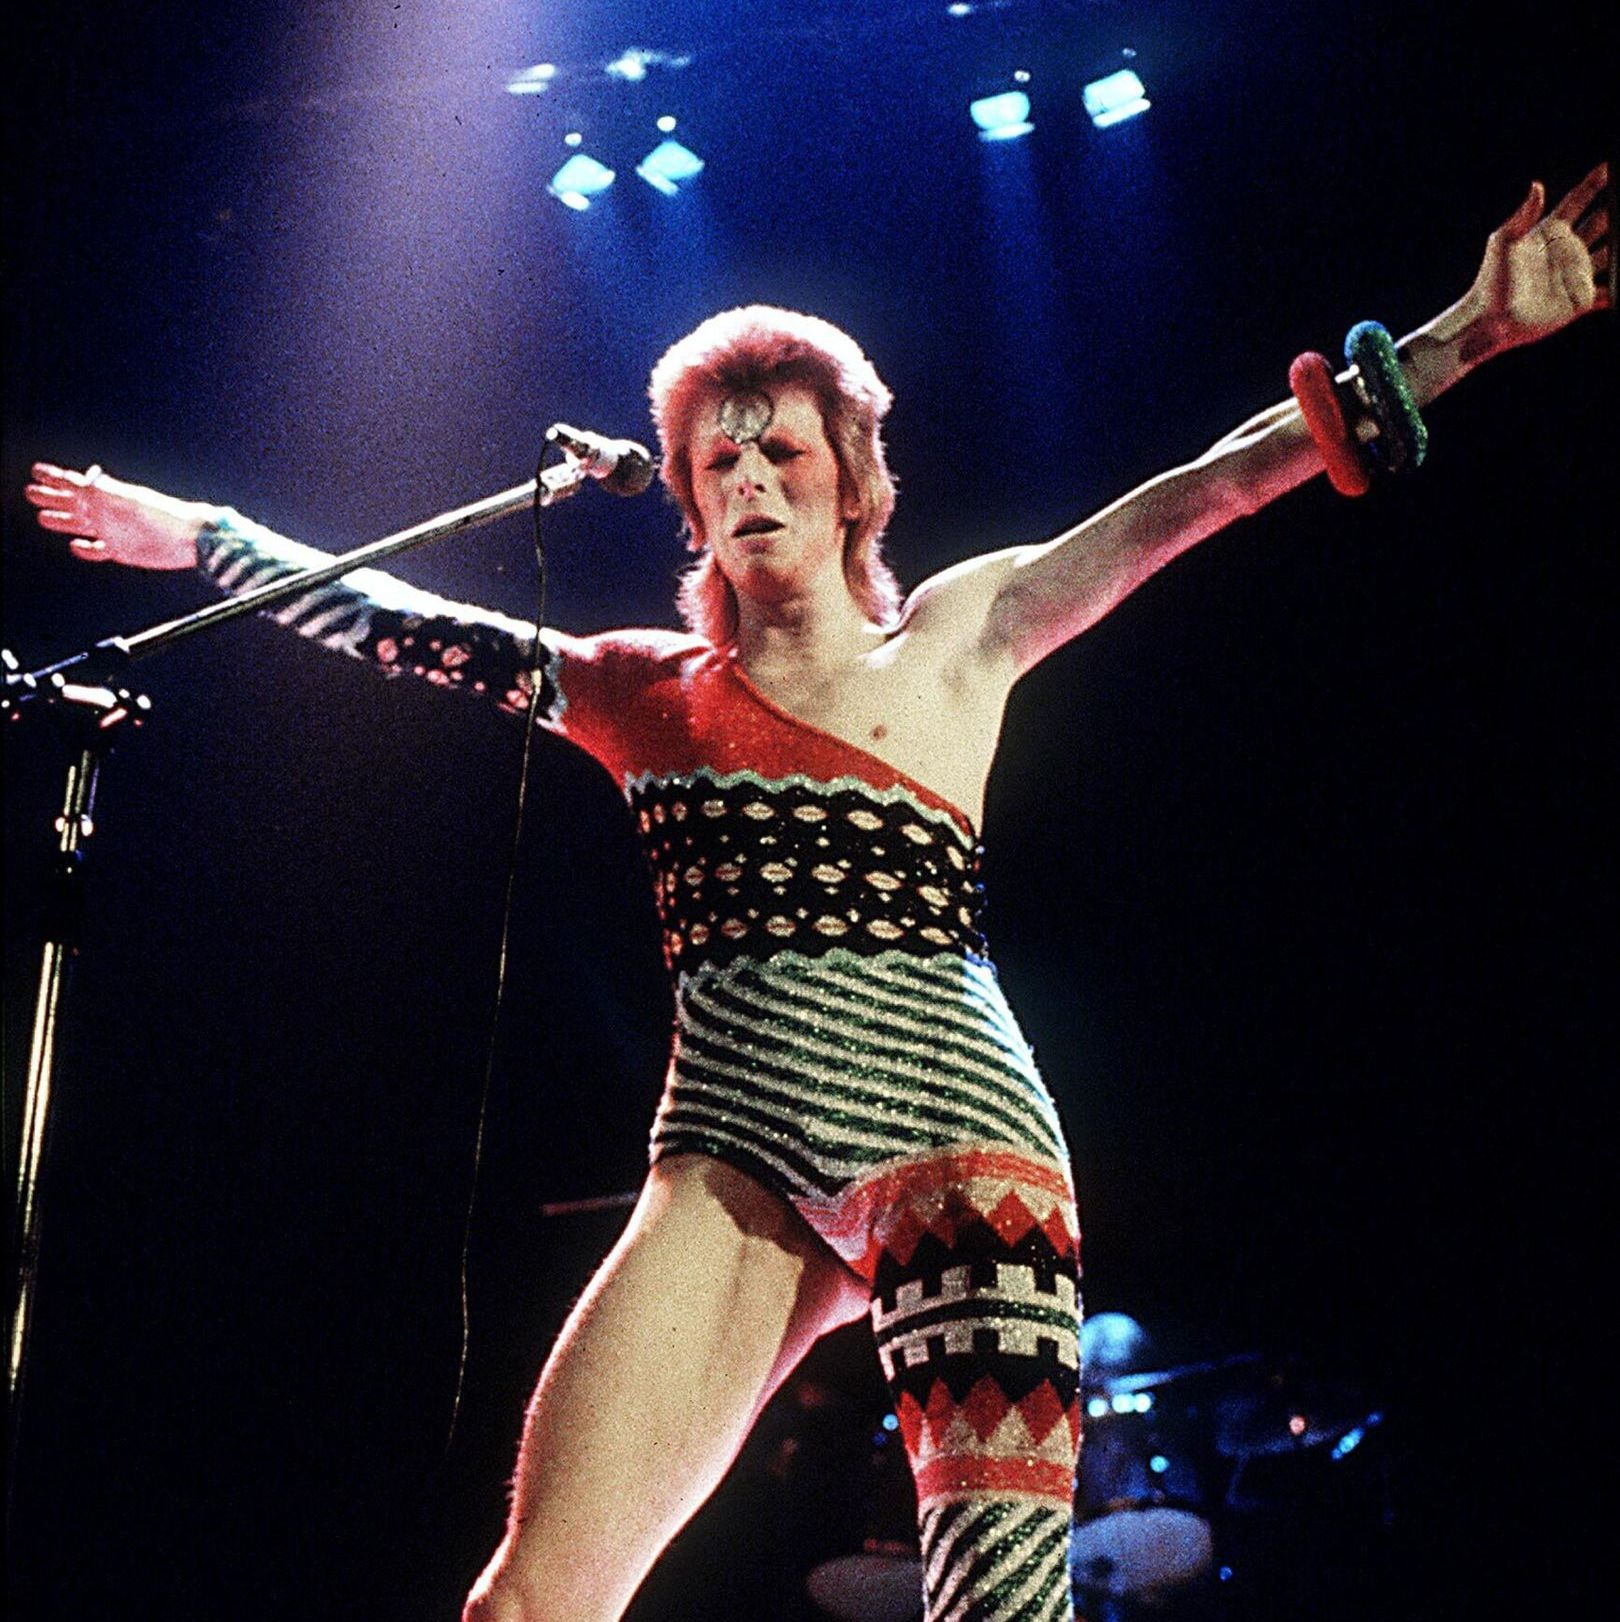 Bowie knit jumpsuit  courtesy vogue  lnpz1o